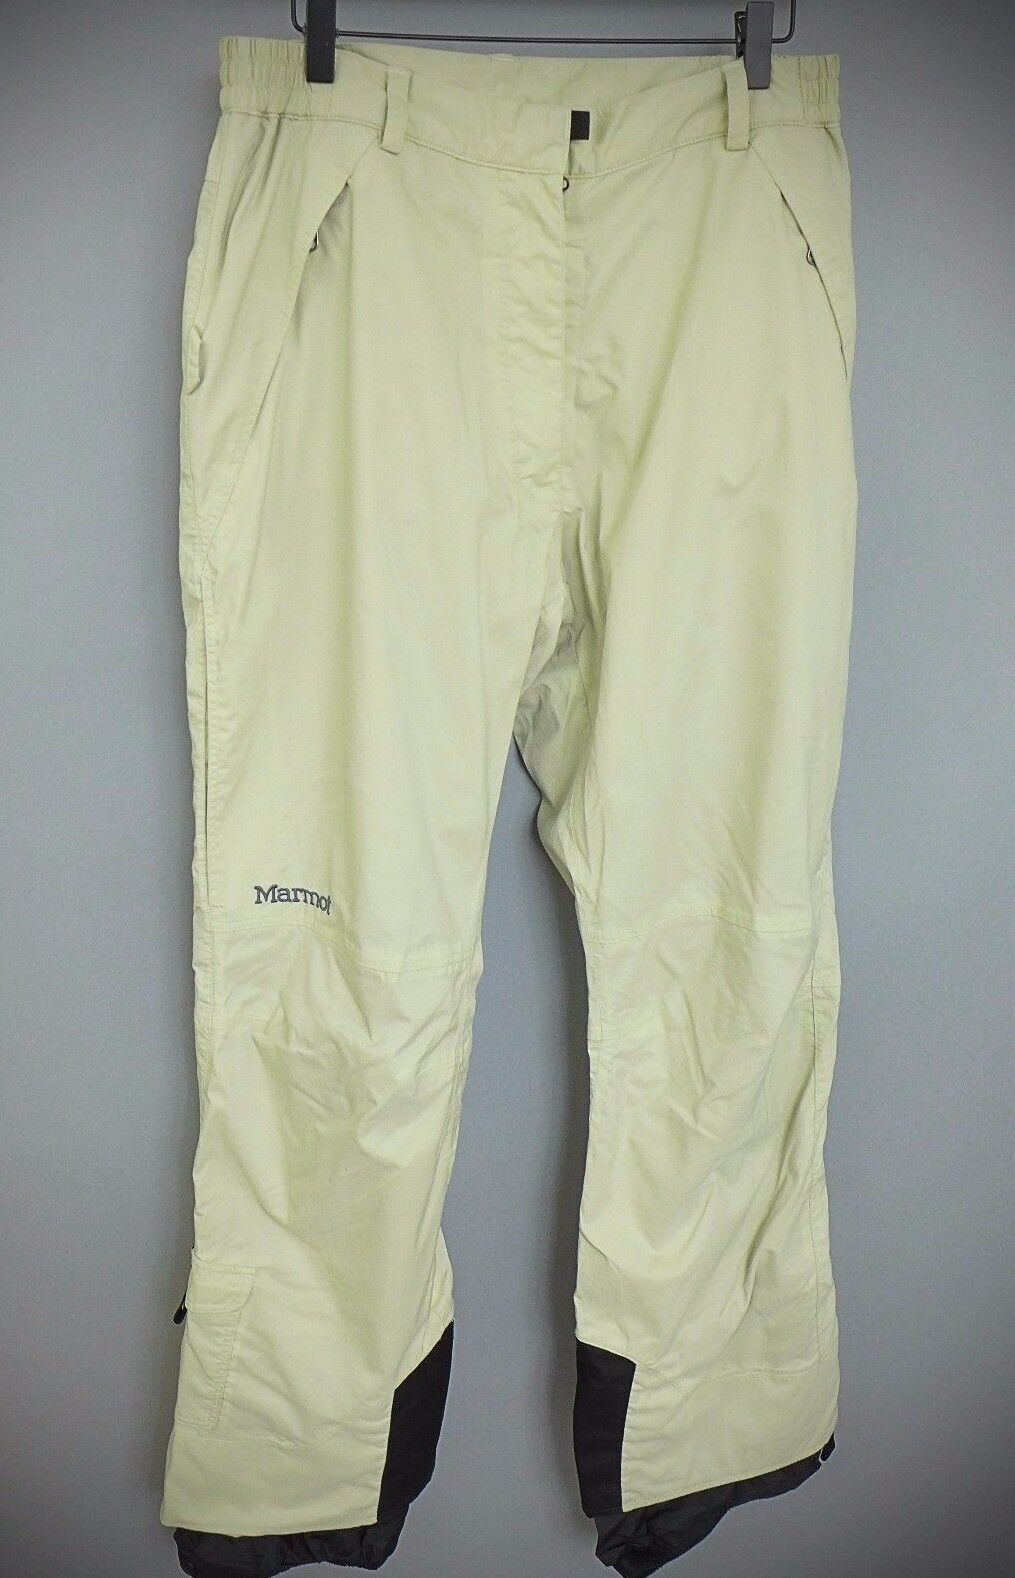 XII263 Women Marmot Skiing Snowboarding Trousers L W32  L31  big discount prices